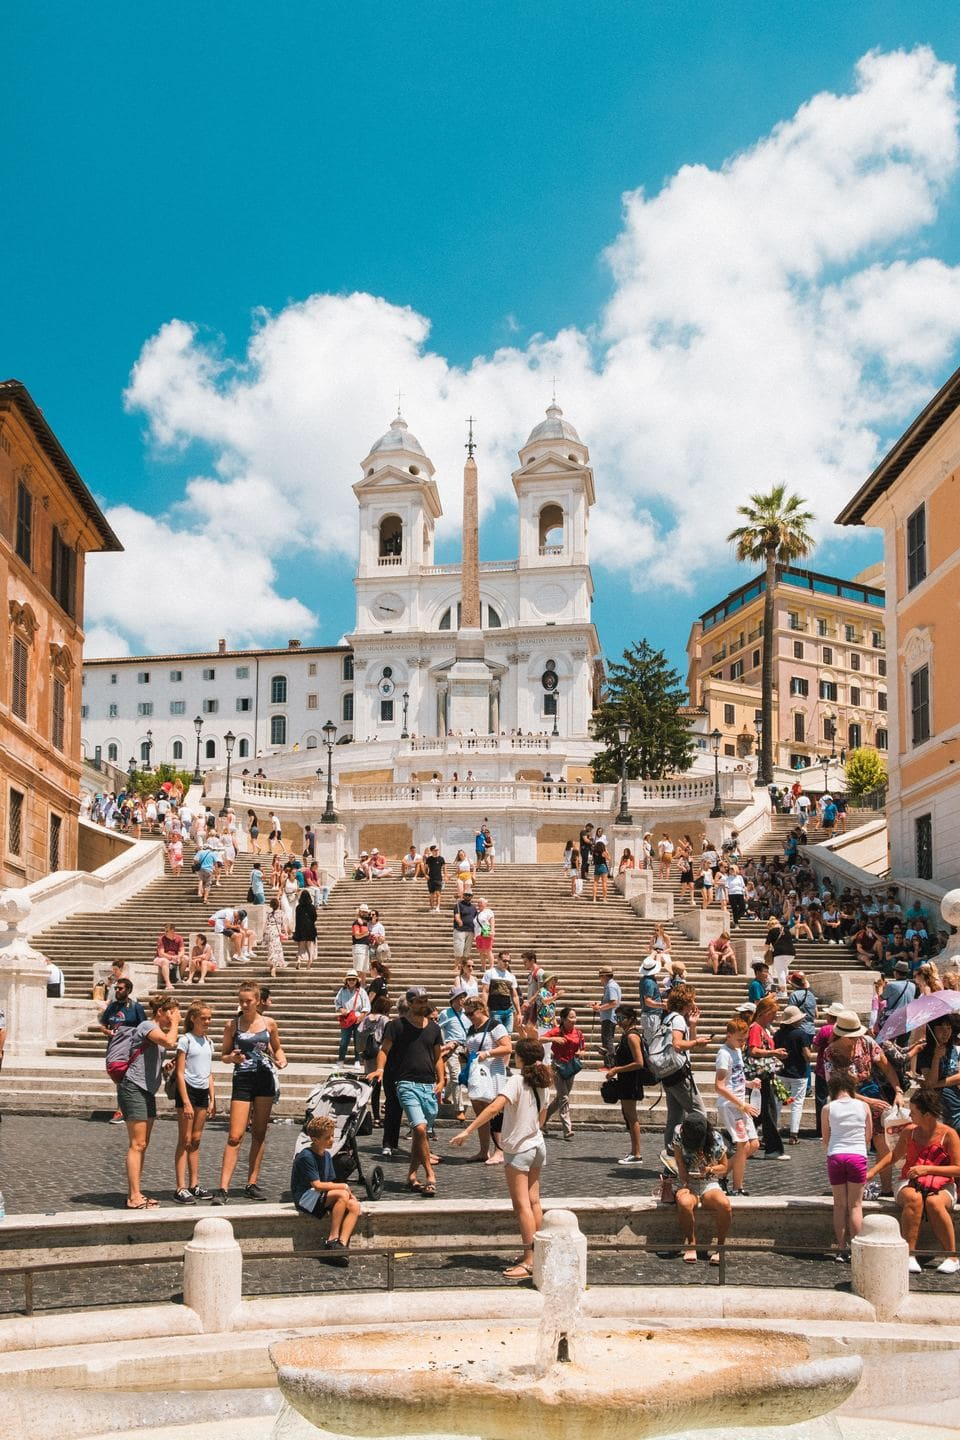 The Spanish Steps and Centro Storico